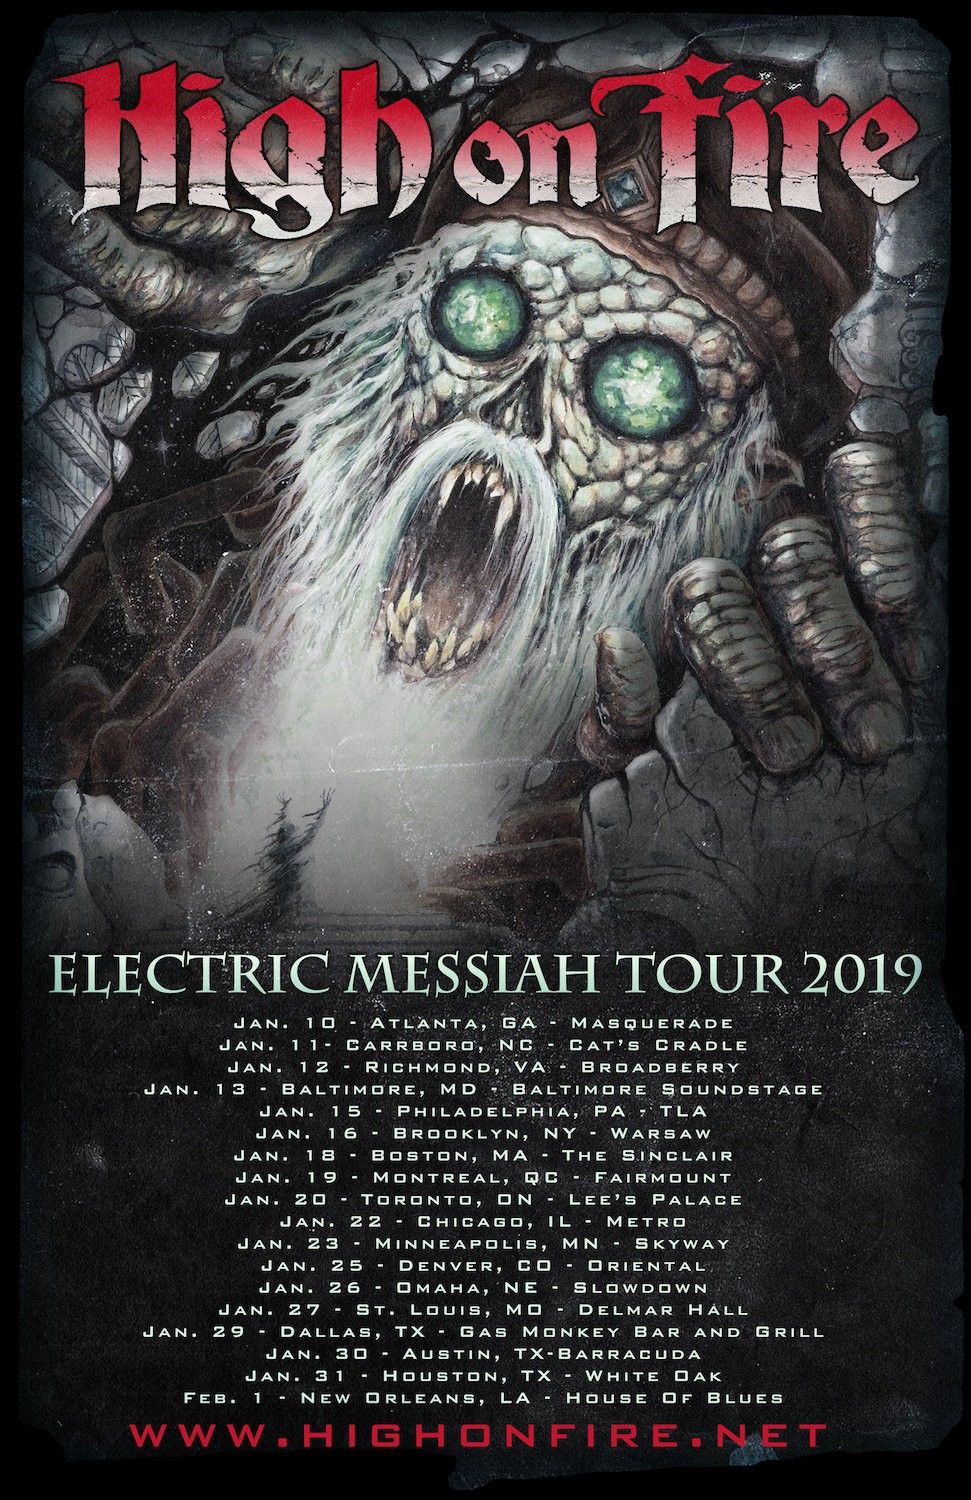 High On Fire Announce The Electric Messiah Tour 2019